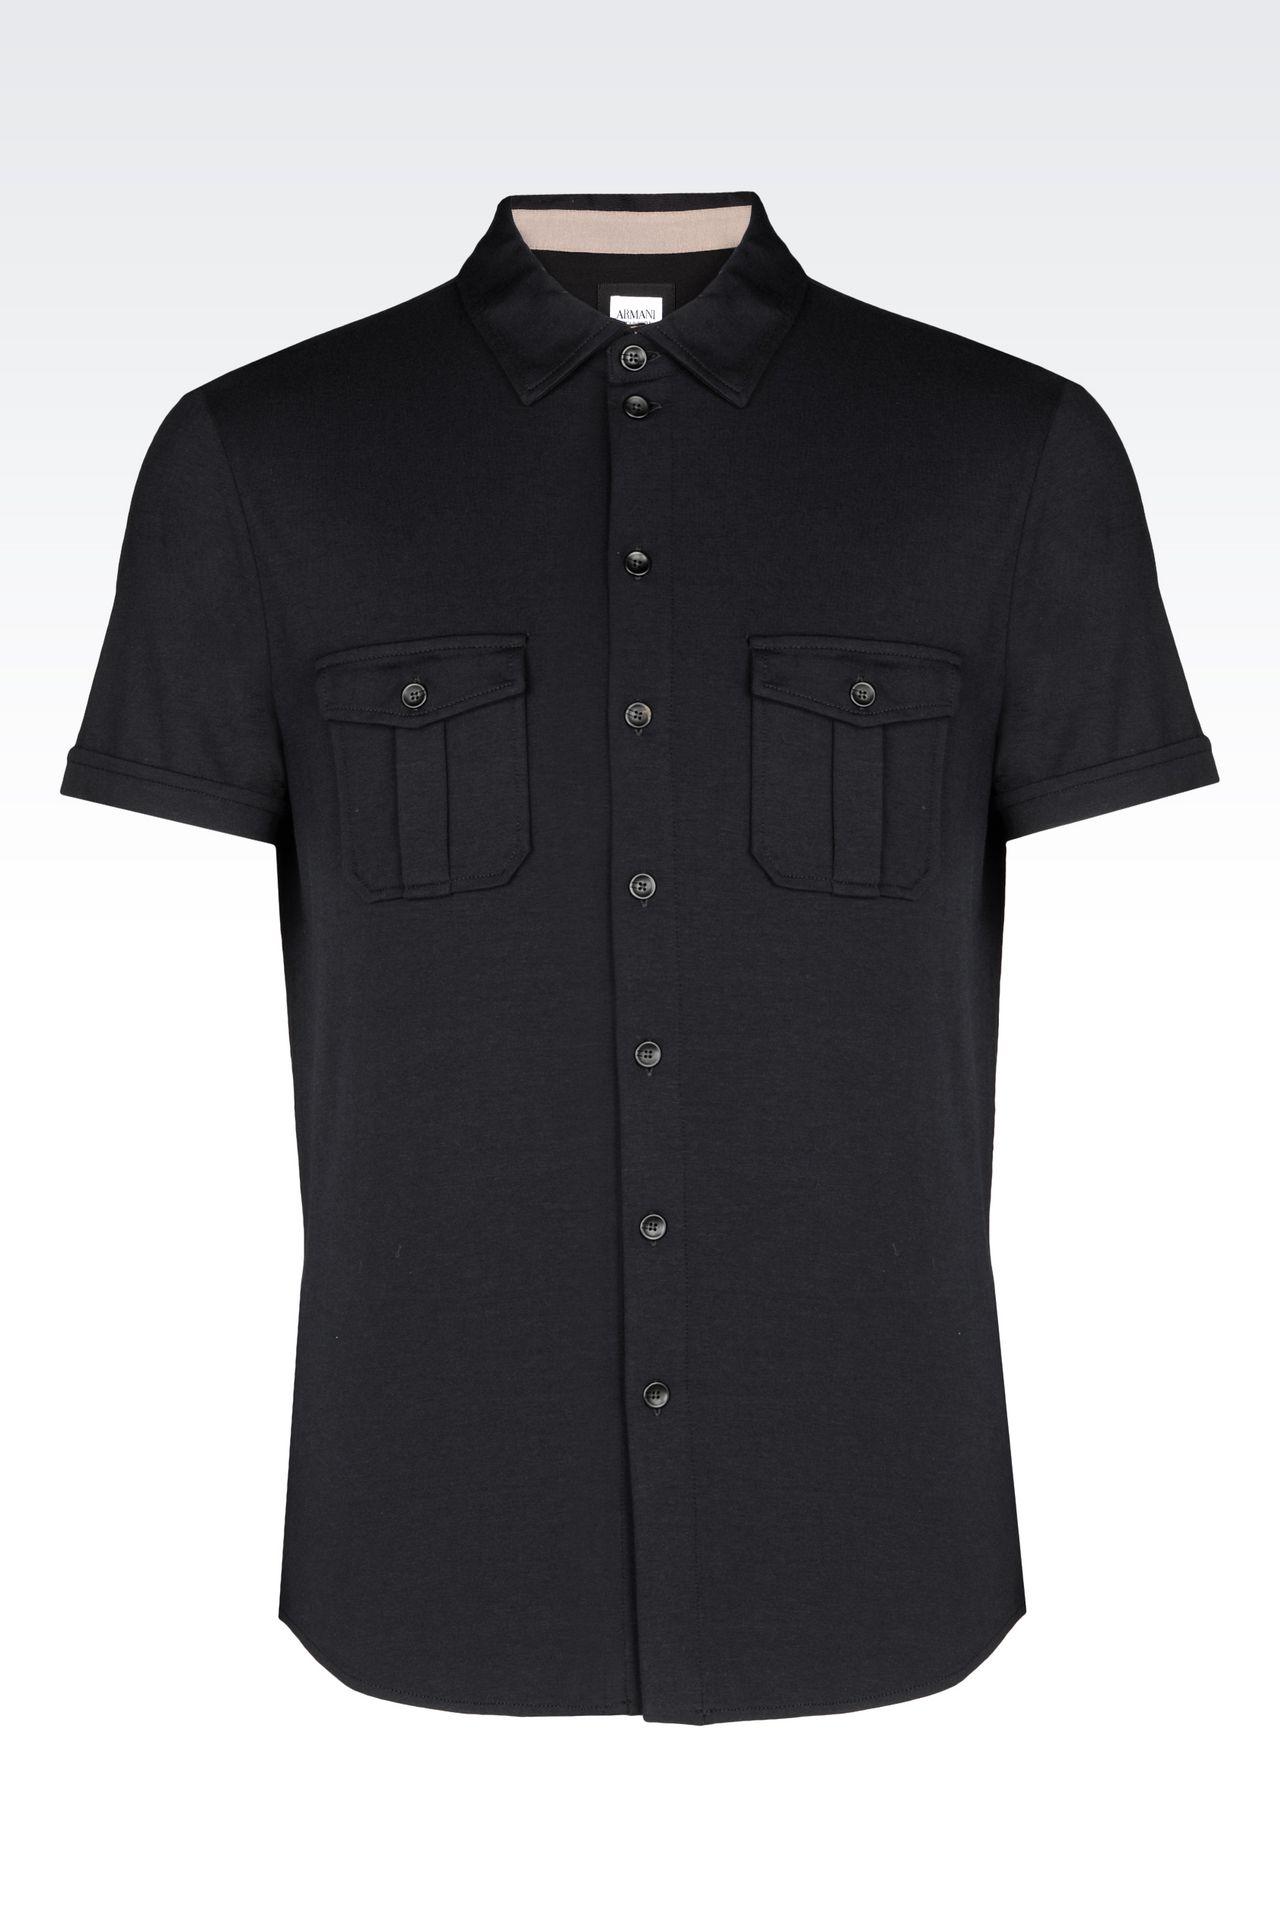 Short sleeve black shirt mens is shirt for Short sleeved shirts for men